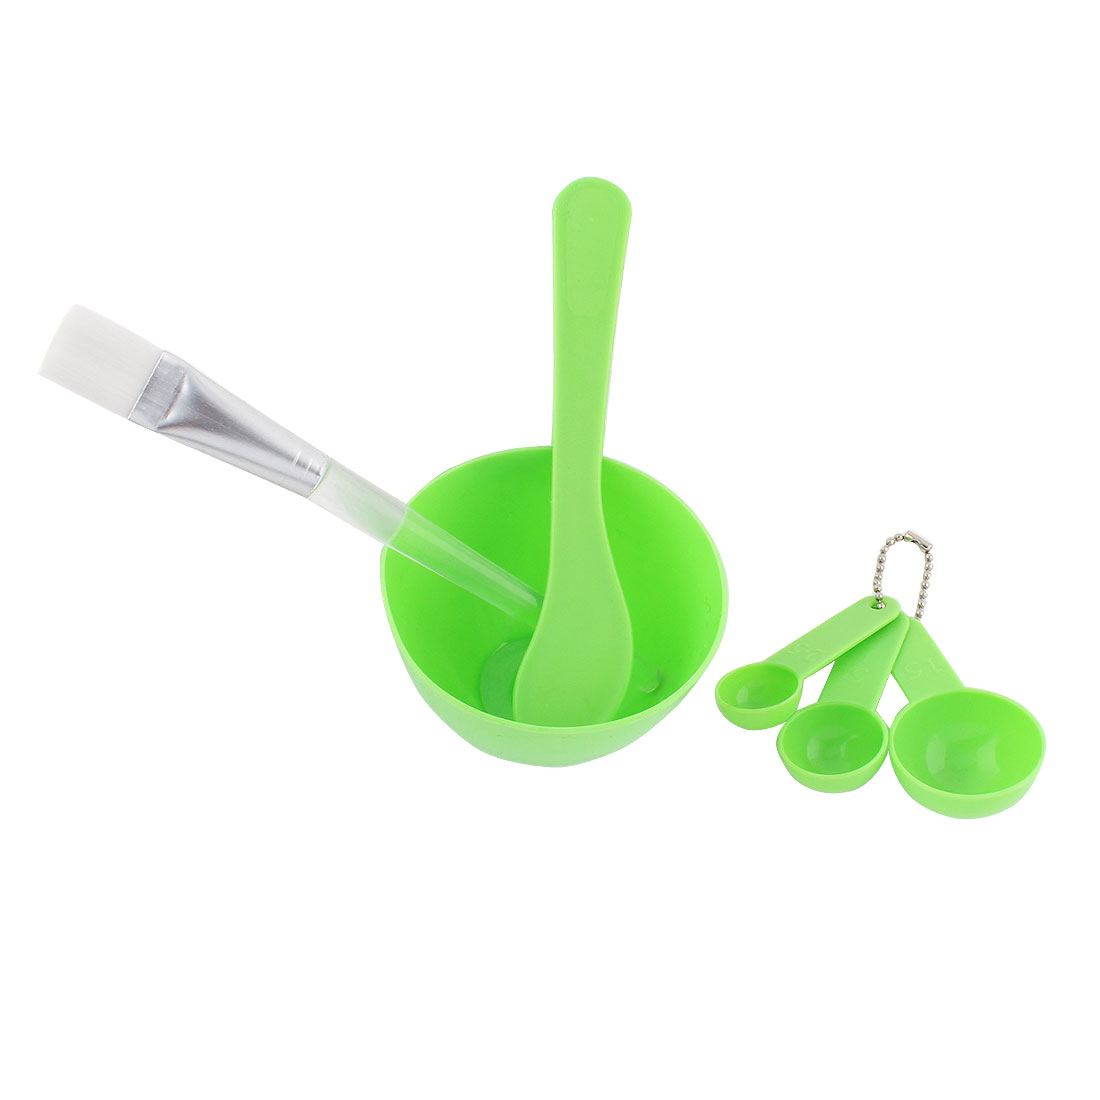 Home Plastic DIY Facial Mask Bowl Measuring Spoon Stick Brush Tool Green 6 in 1